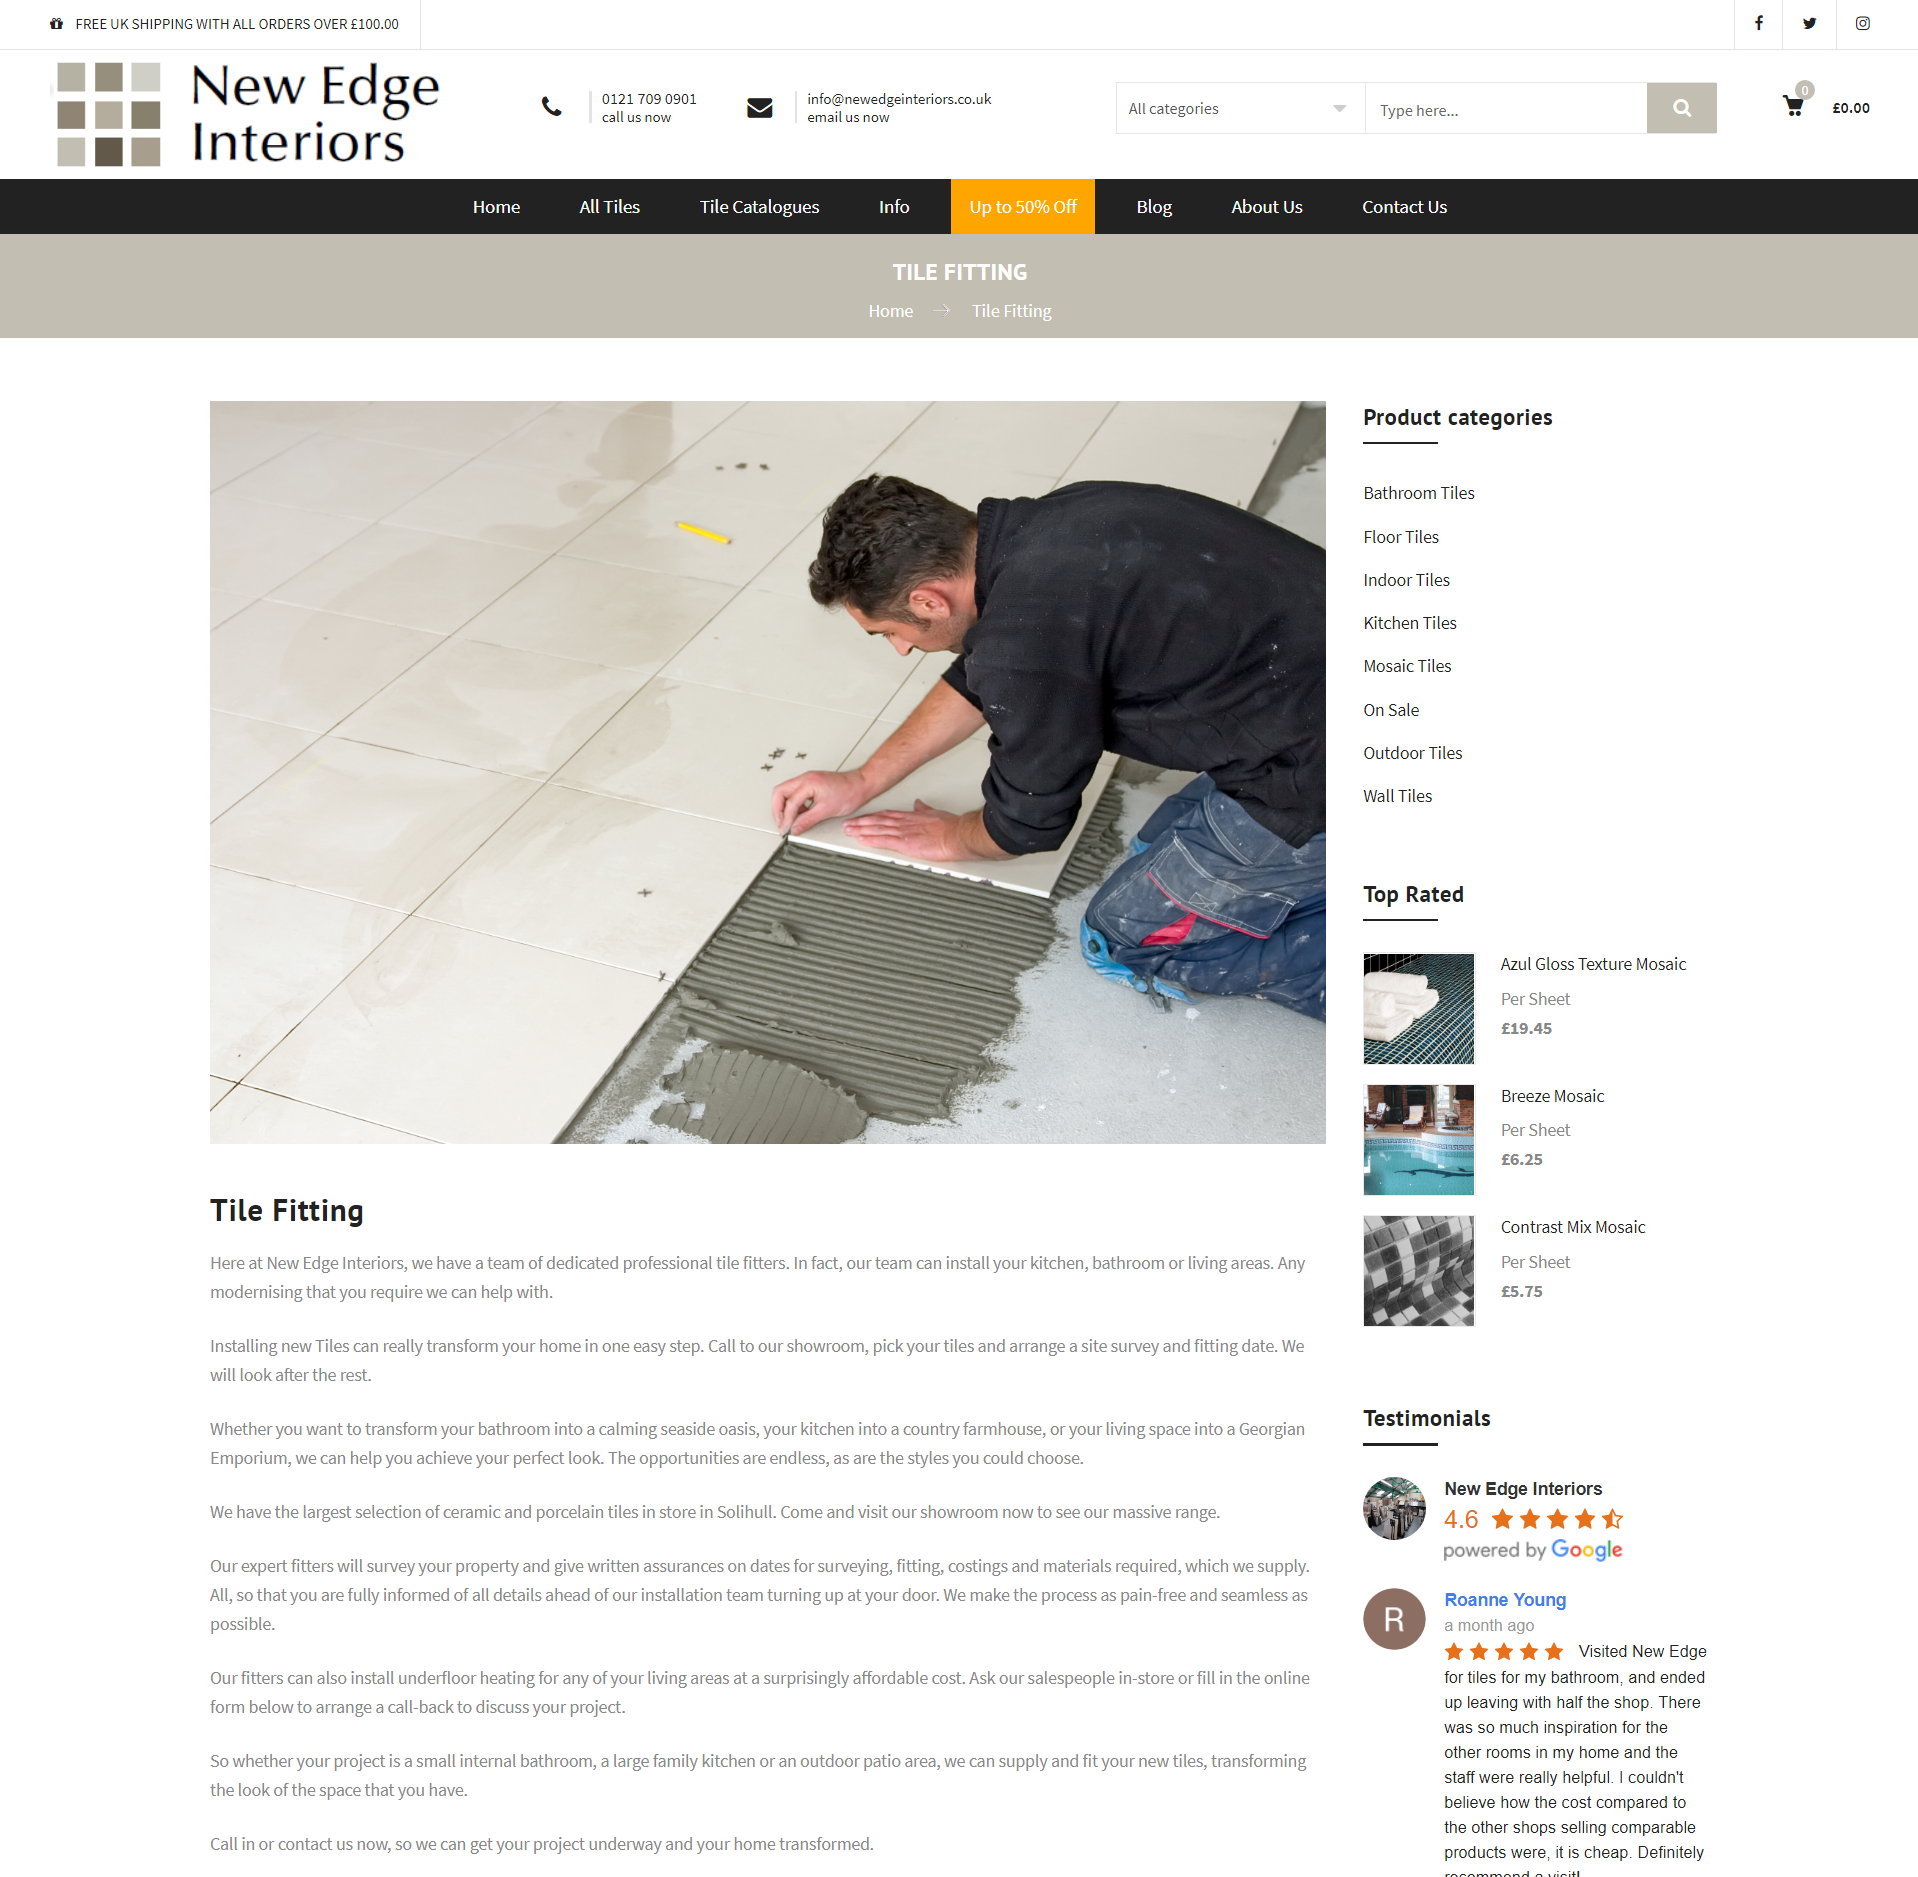 www.newedgeinteriors.co.uk The Largest online tile shop in the UK